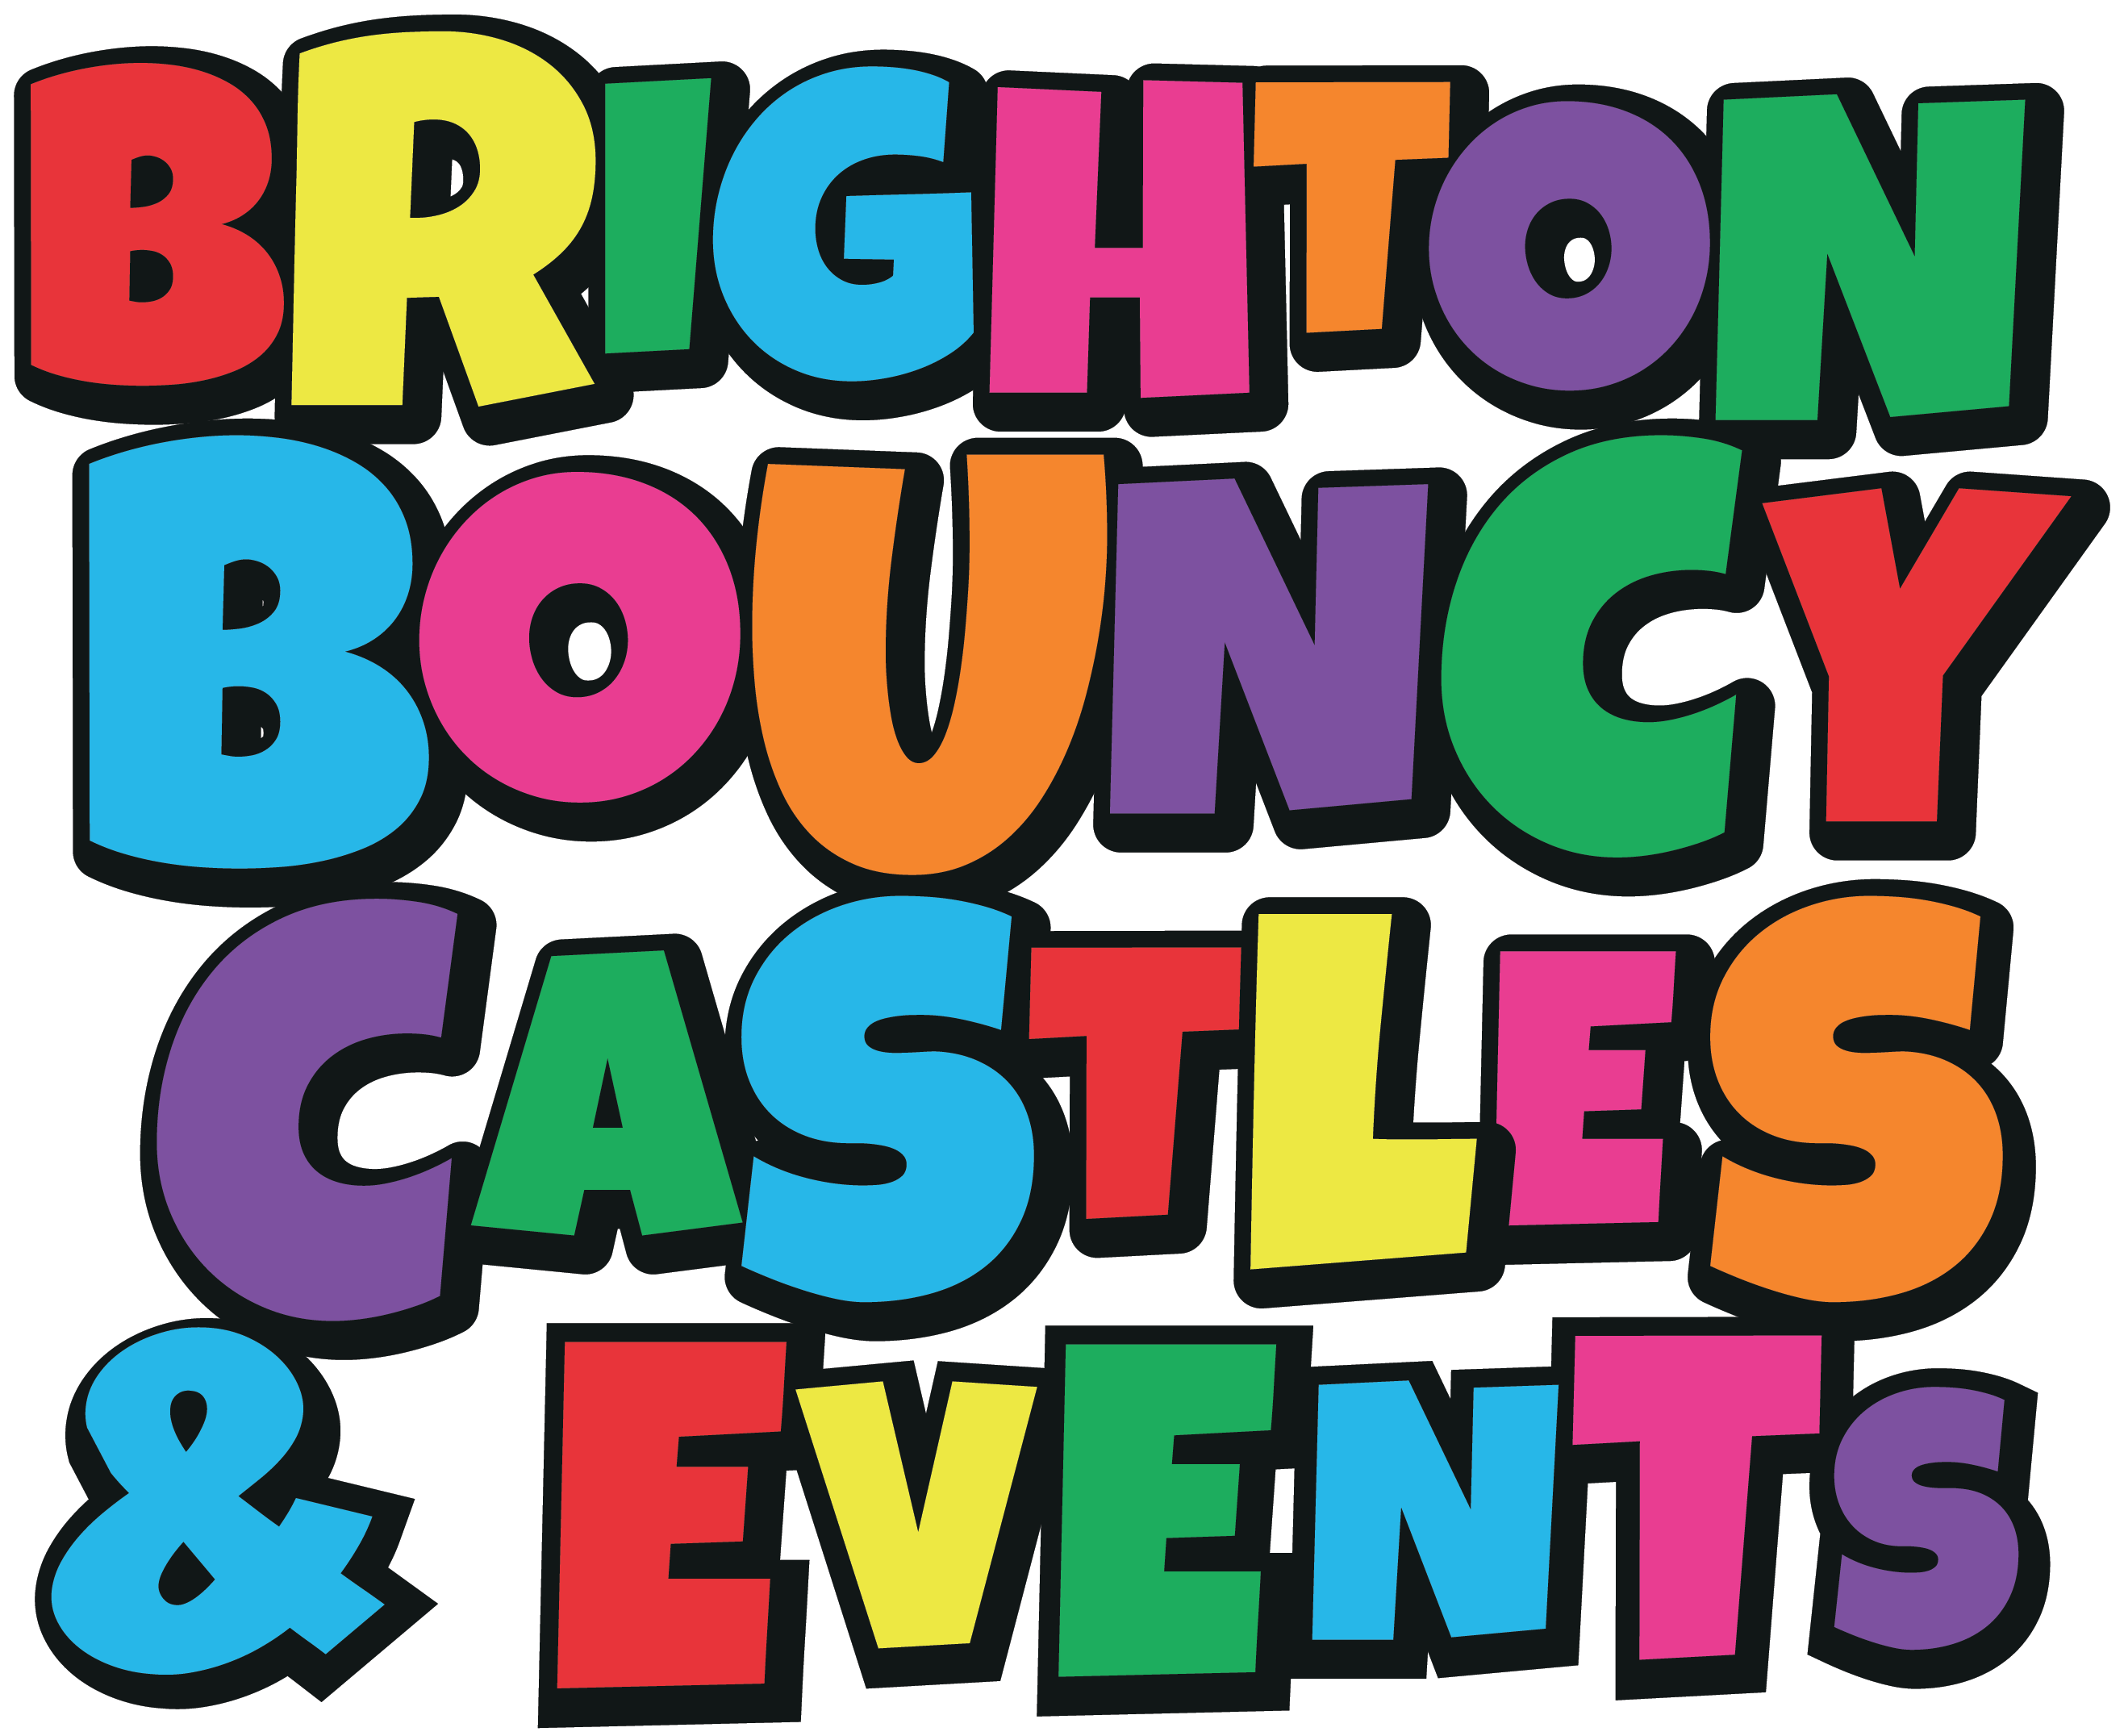 Brighton Bouncy Castles's logo